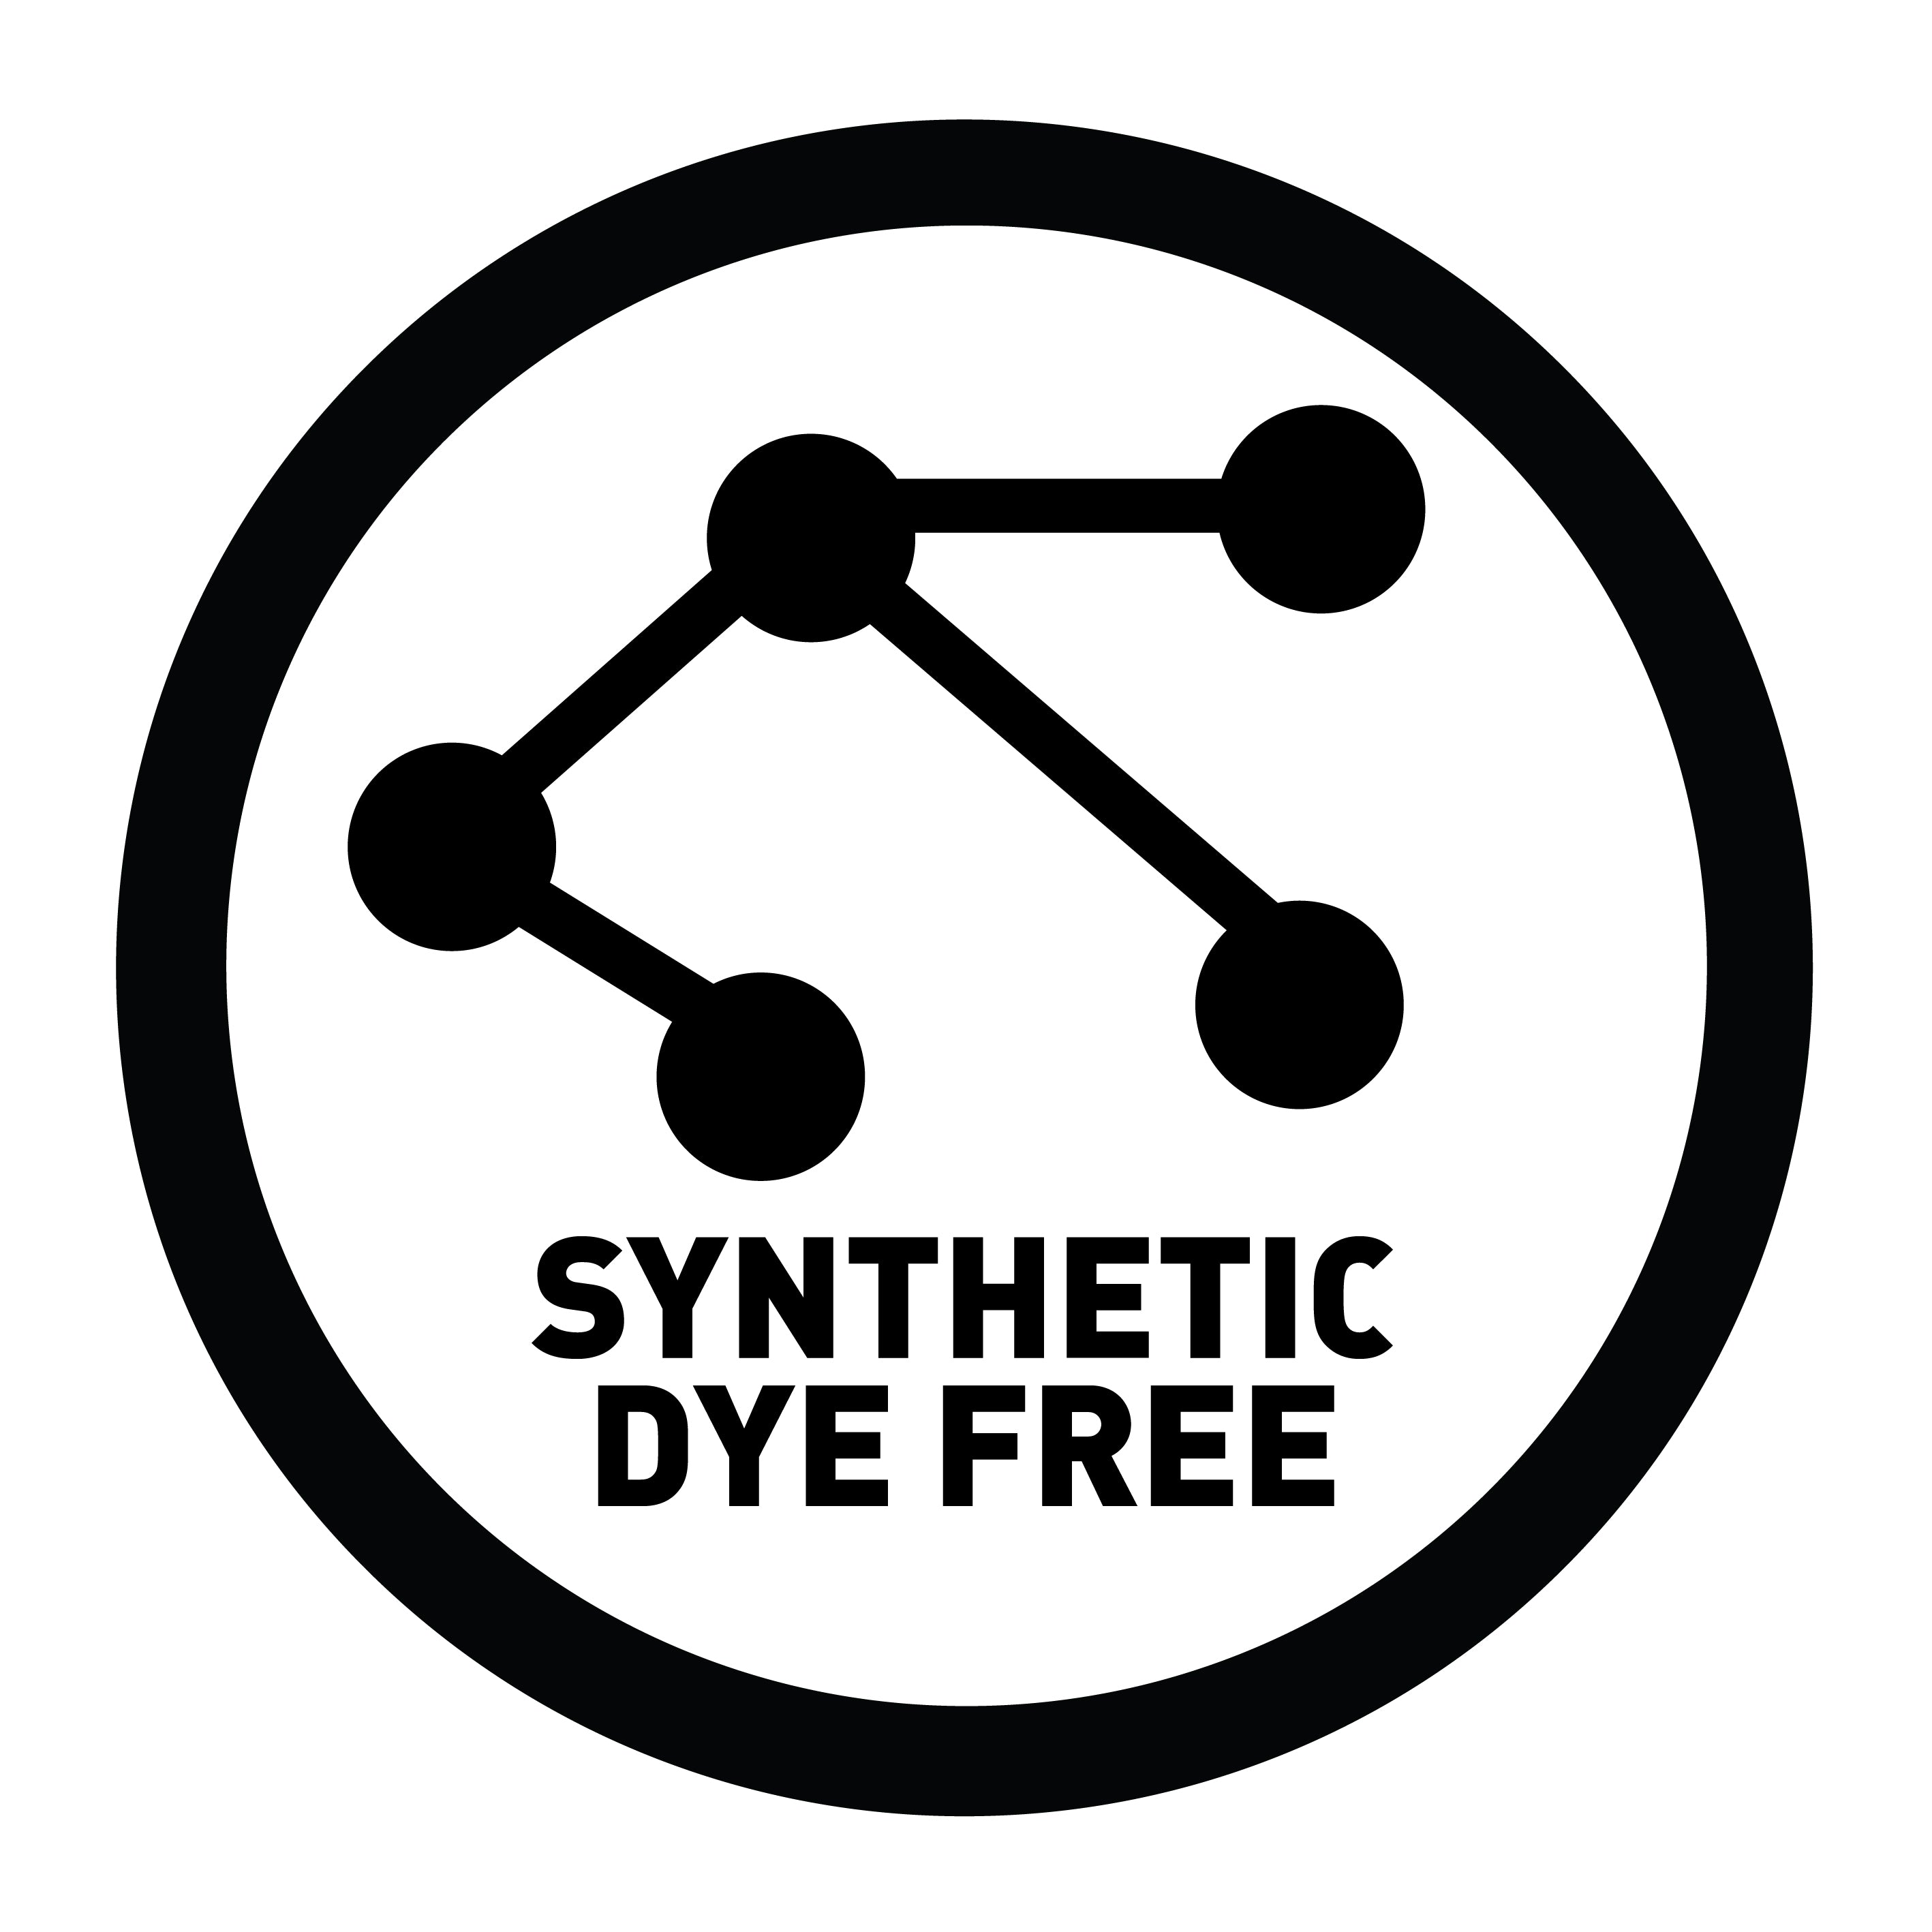 Synthetic Dye Free Cosmetics